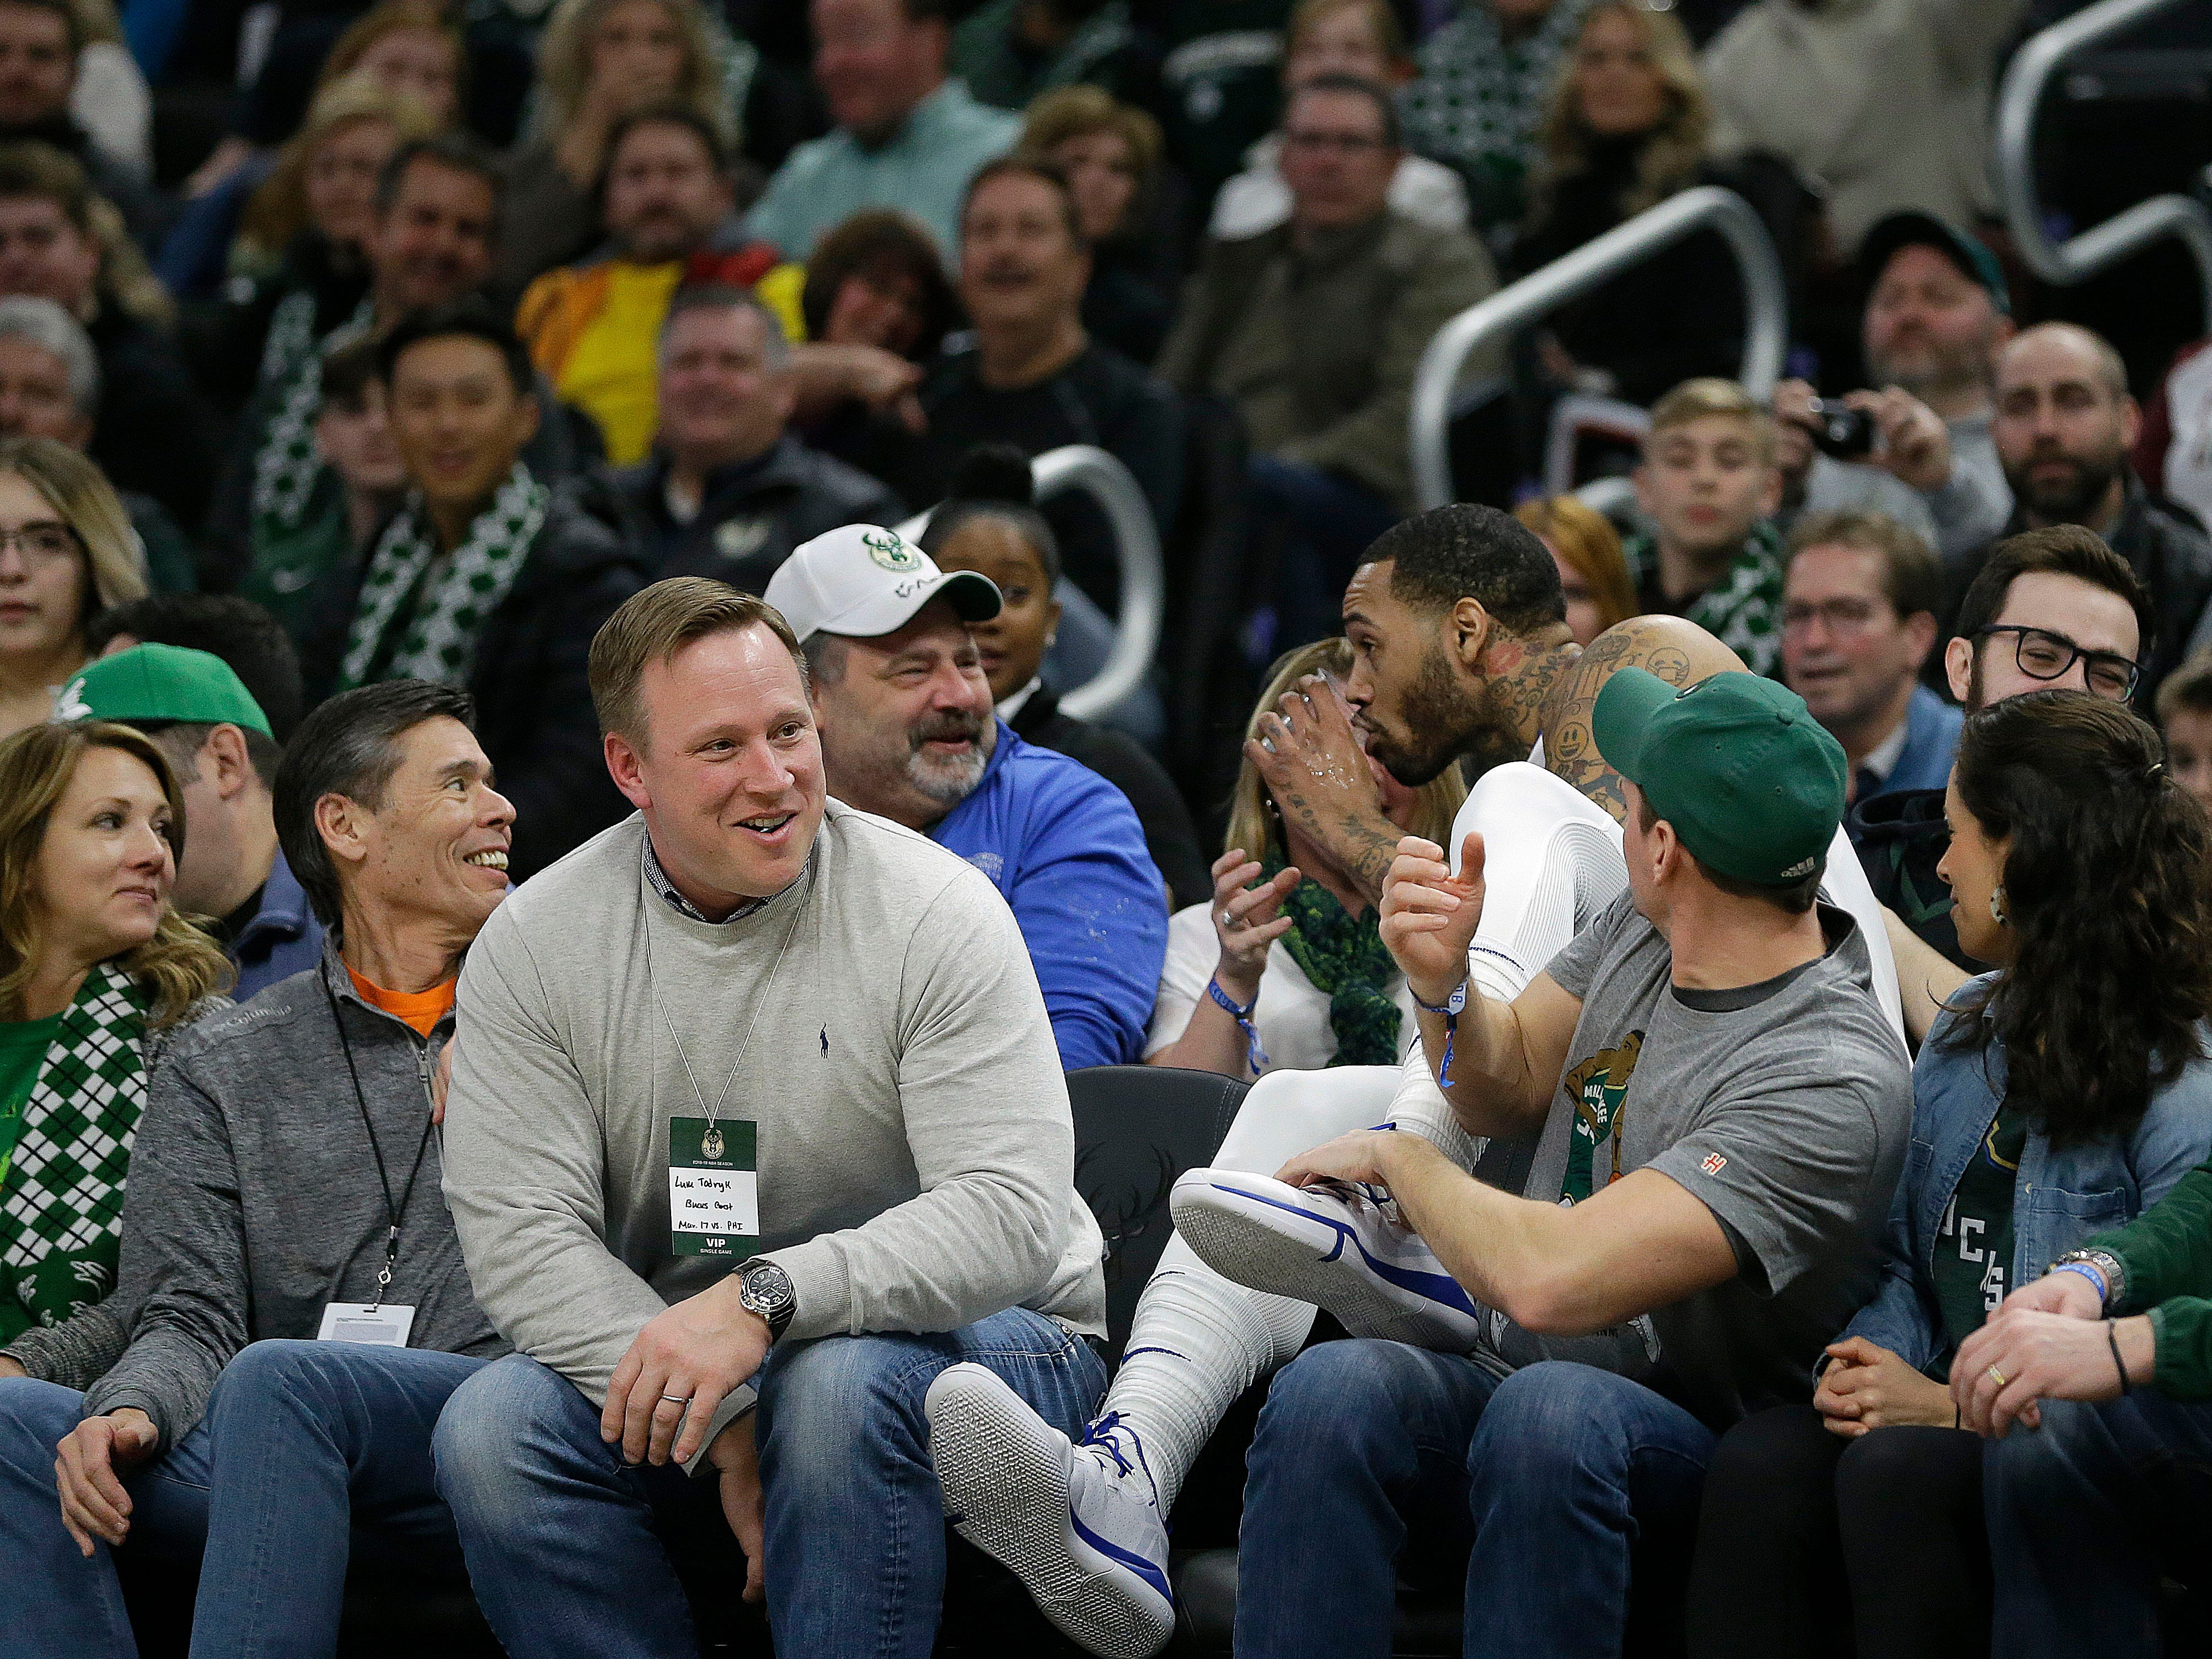 76ers forward Mike Scott takes a sip from a fan's drink after diving into the stands trying to save the ball from going out of bounds during the first half against the Bucks.